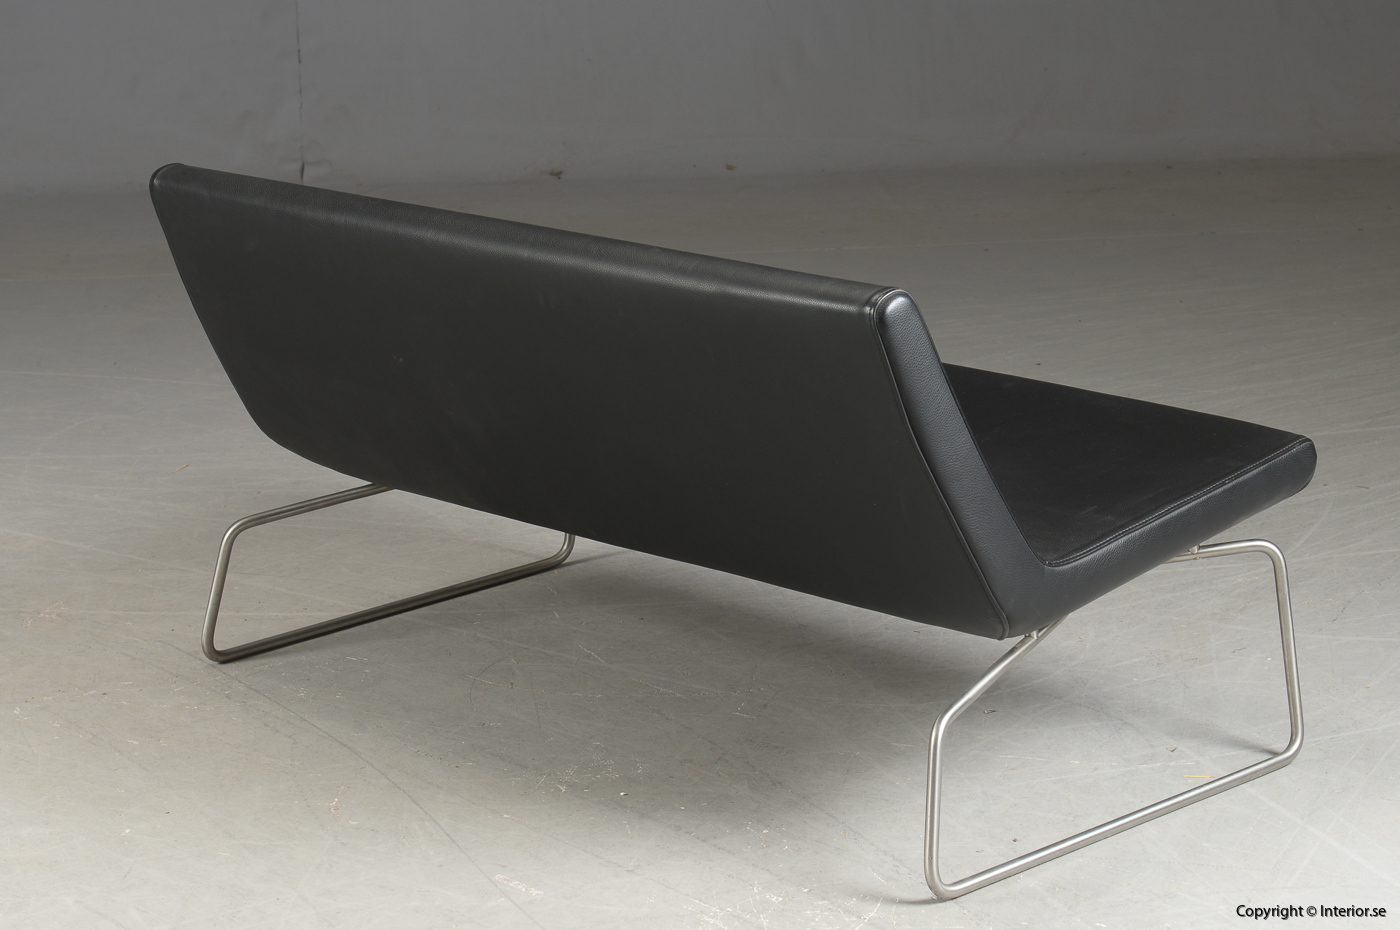 Soffa, Cappellini Superlight Sofa - Barber Osgerby 4